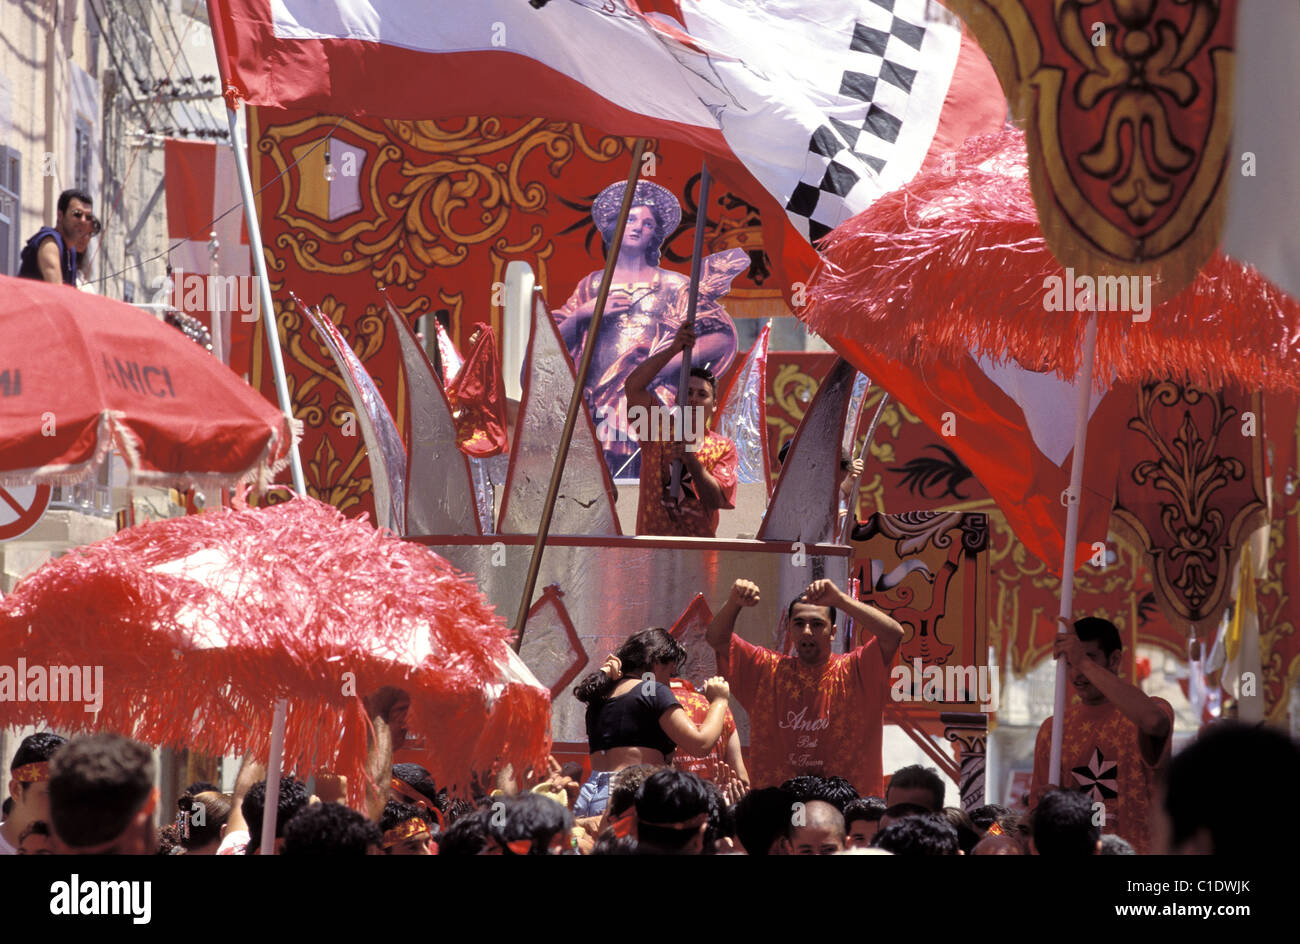 Malta, summer festas, Saint George banda in QormiStock Photo